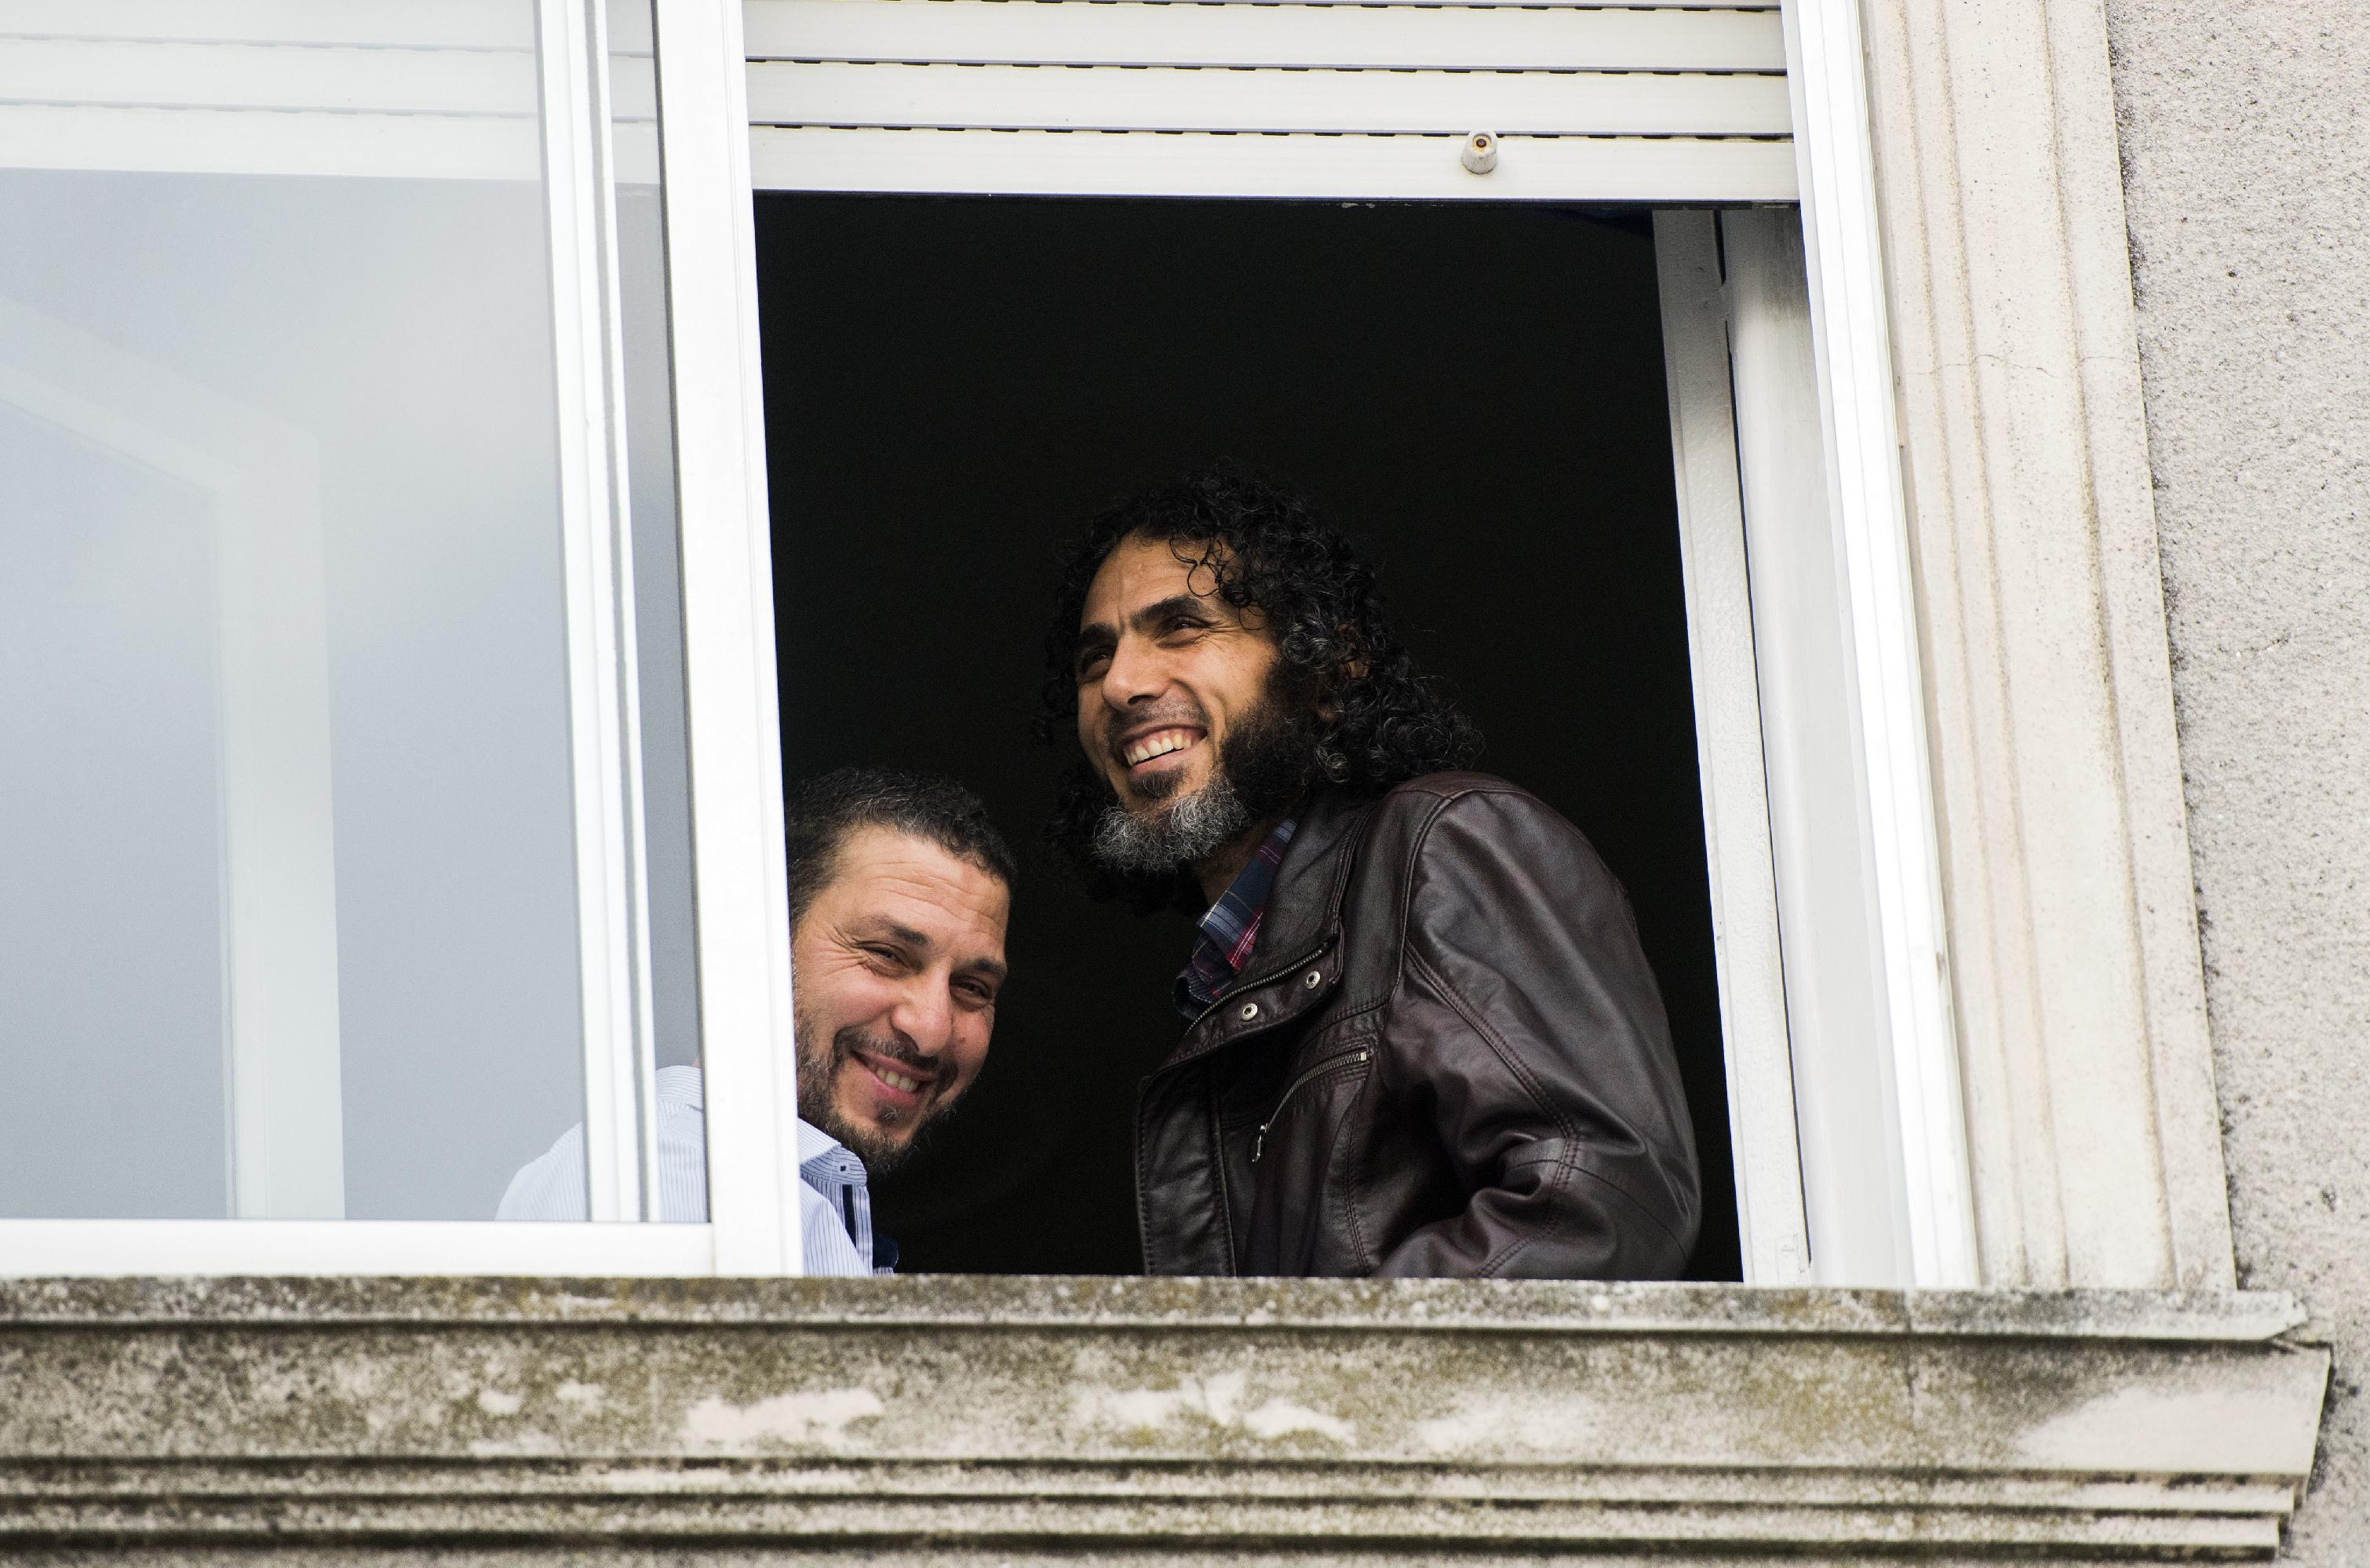 Missing ex-Guantanamo detainee reappears in Venezuela